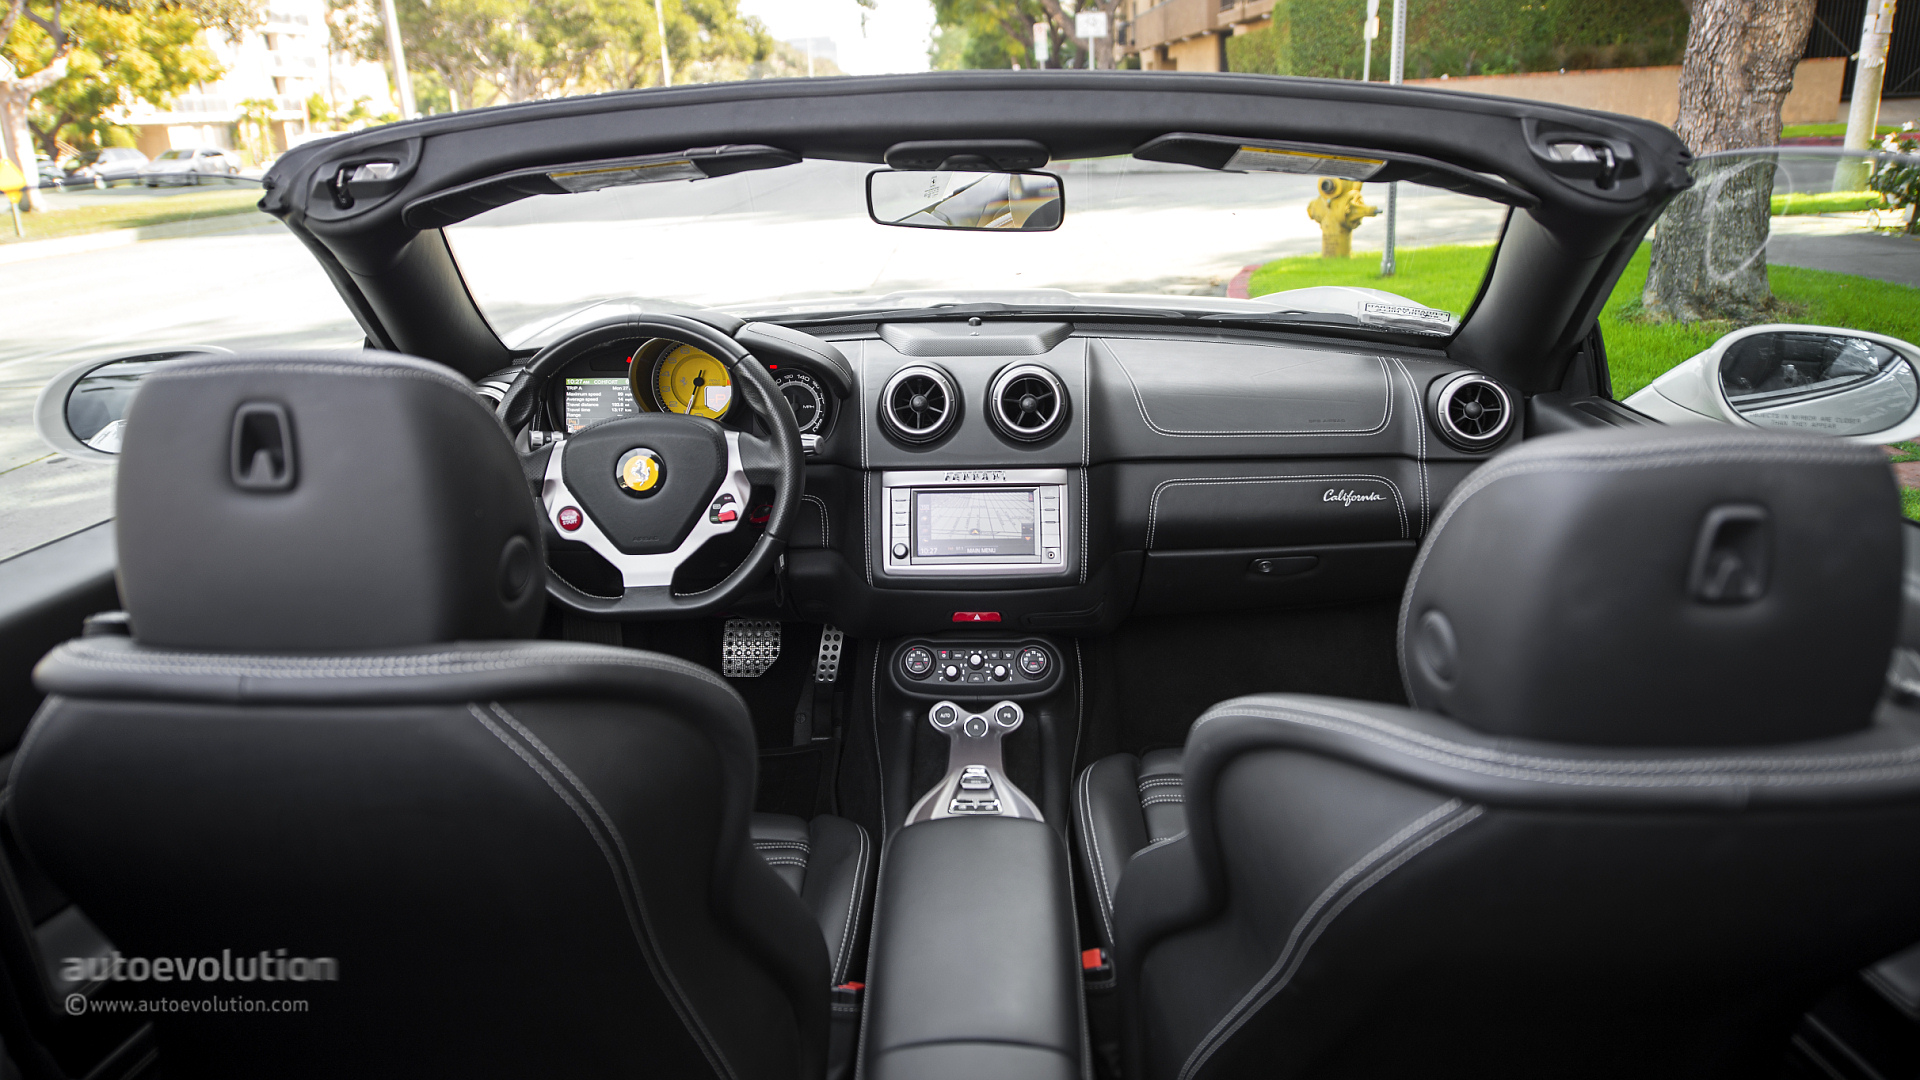 FERRARI California Review (Page 4) - autoevolution